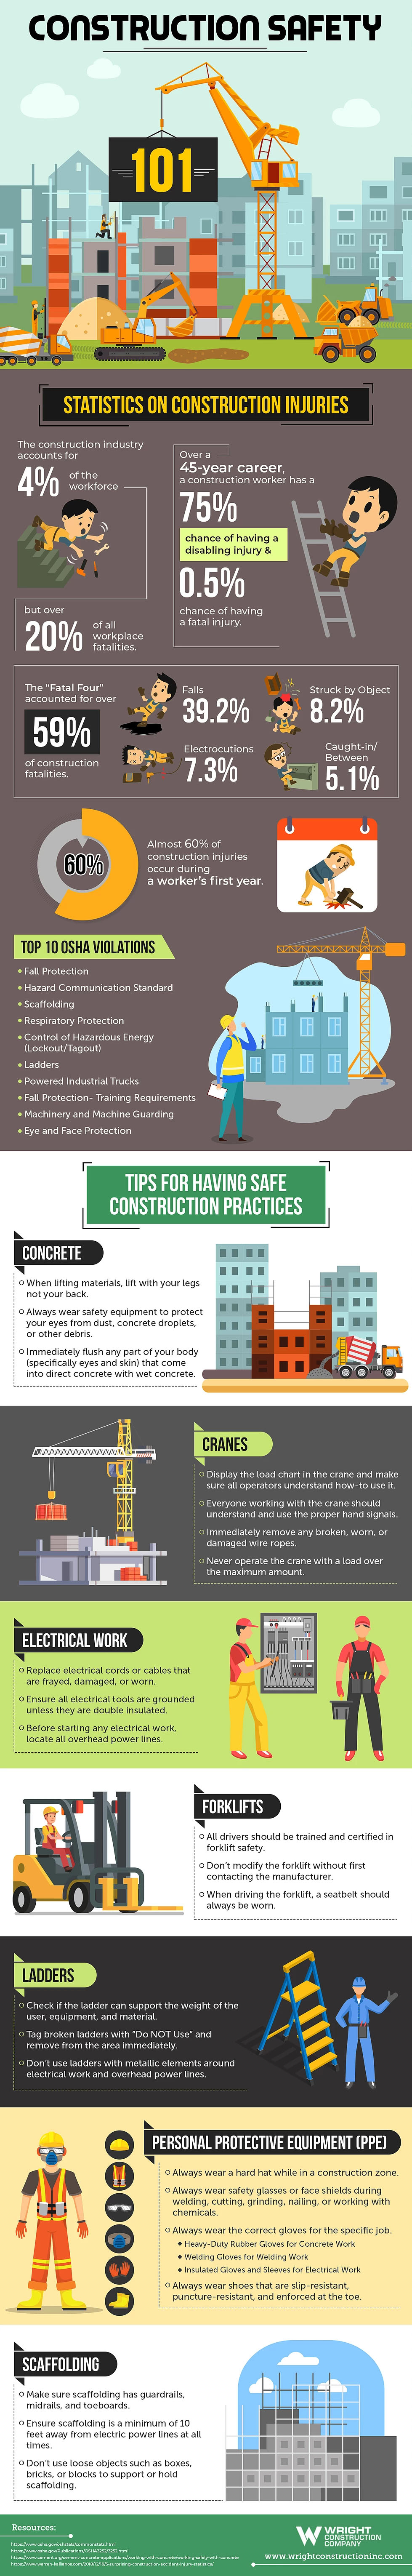 Construction Safety 101